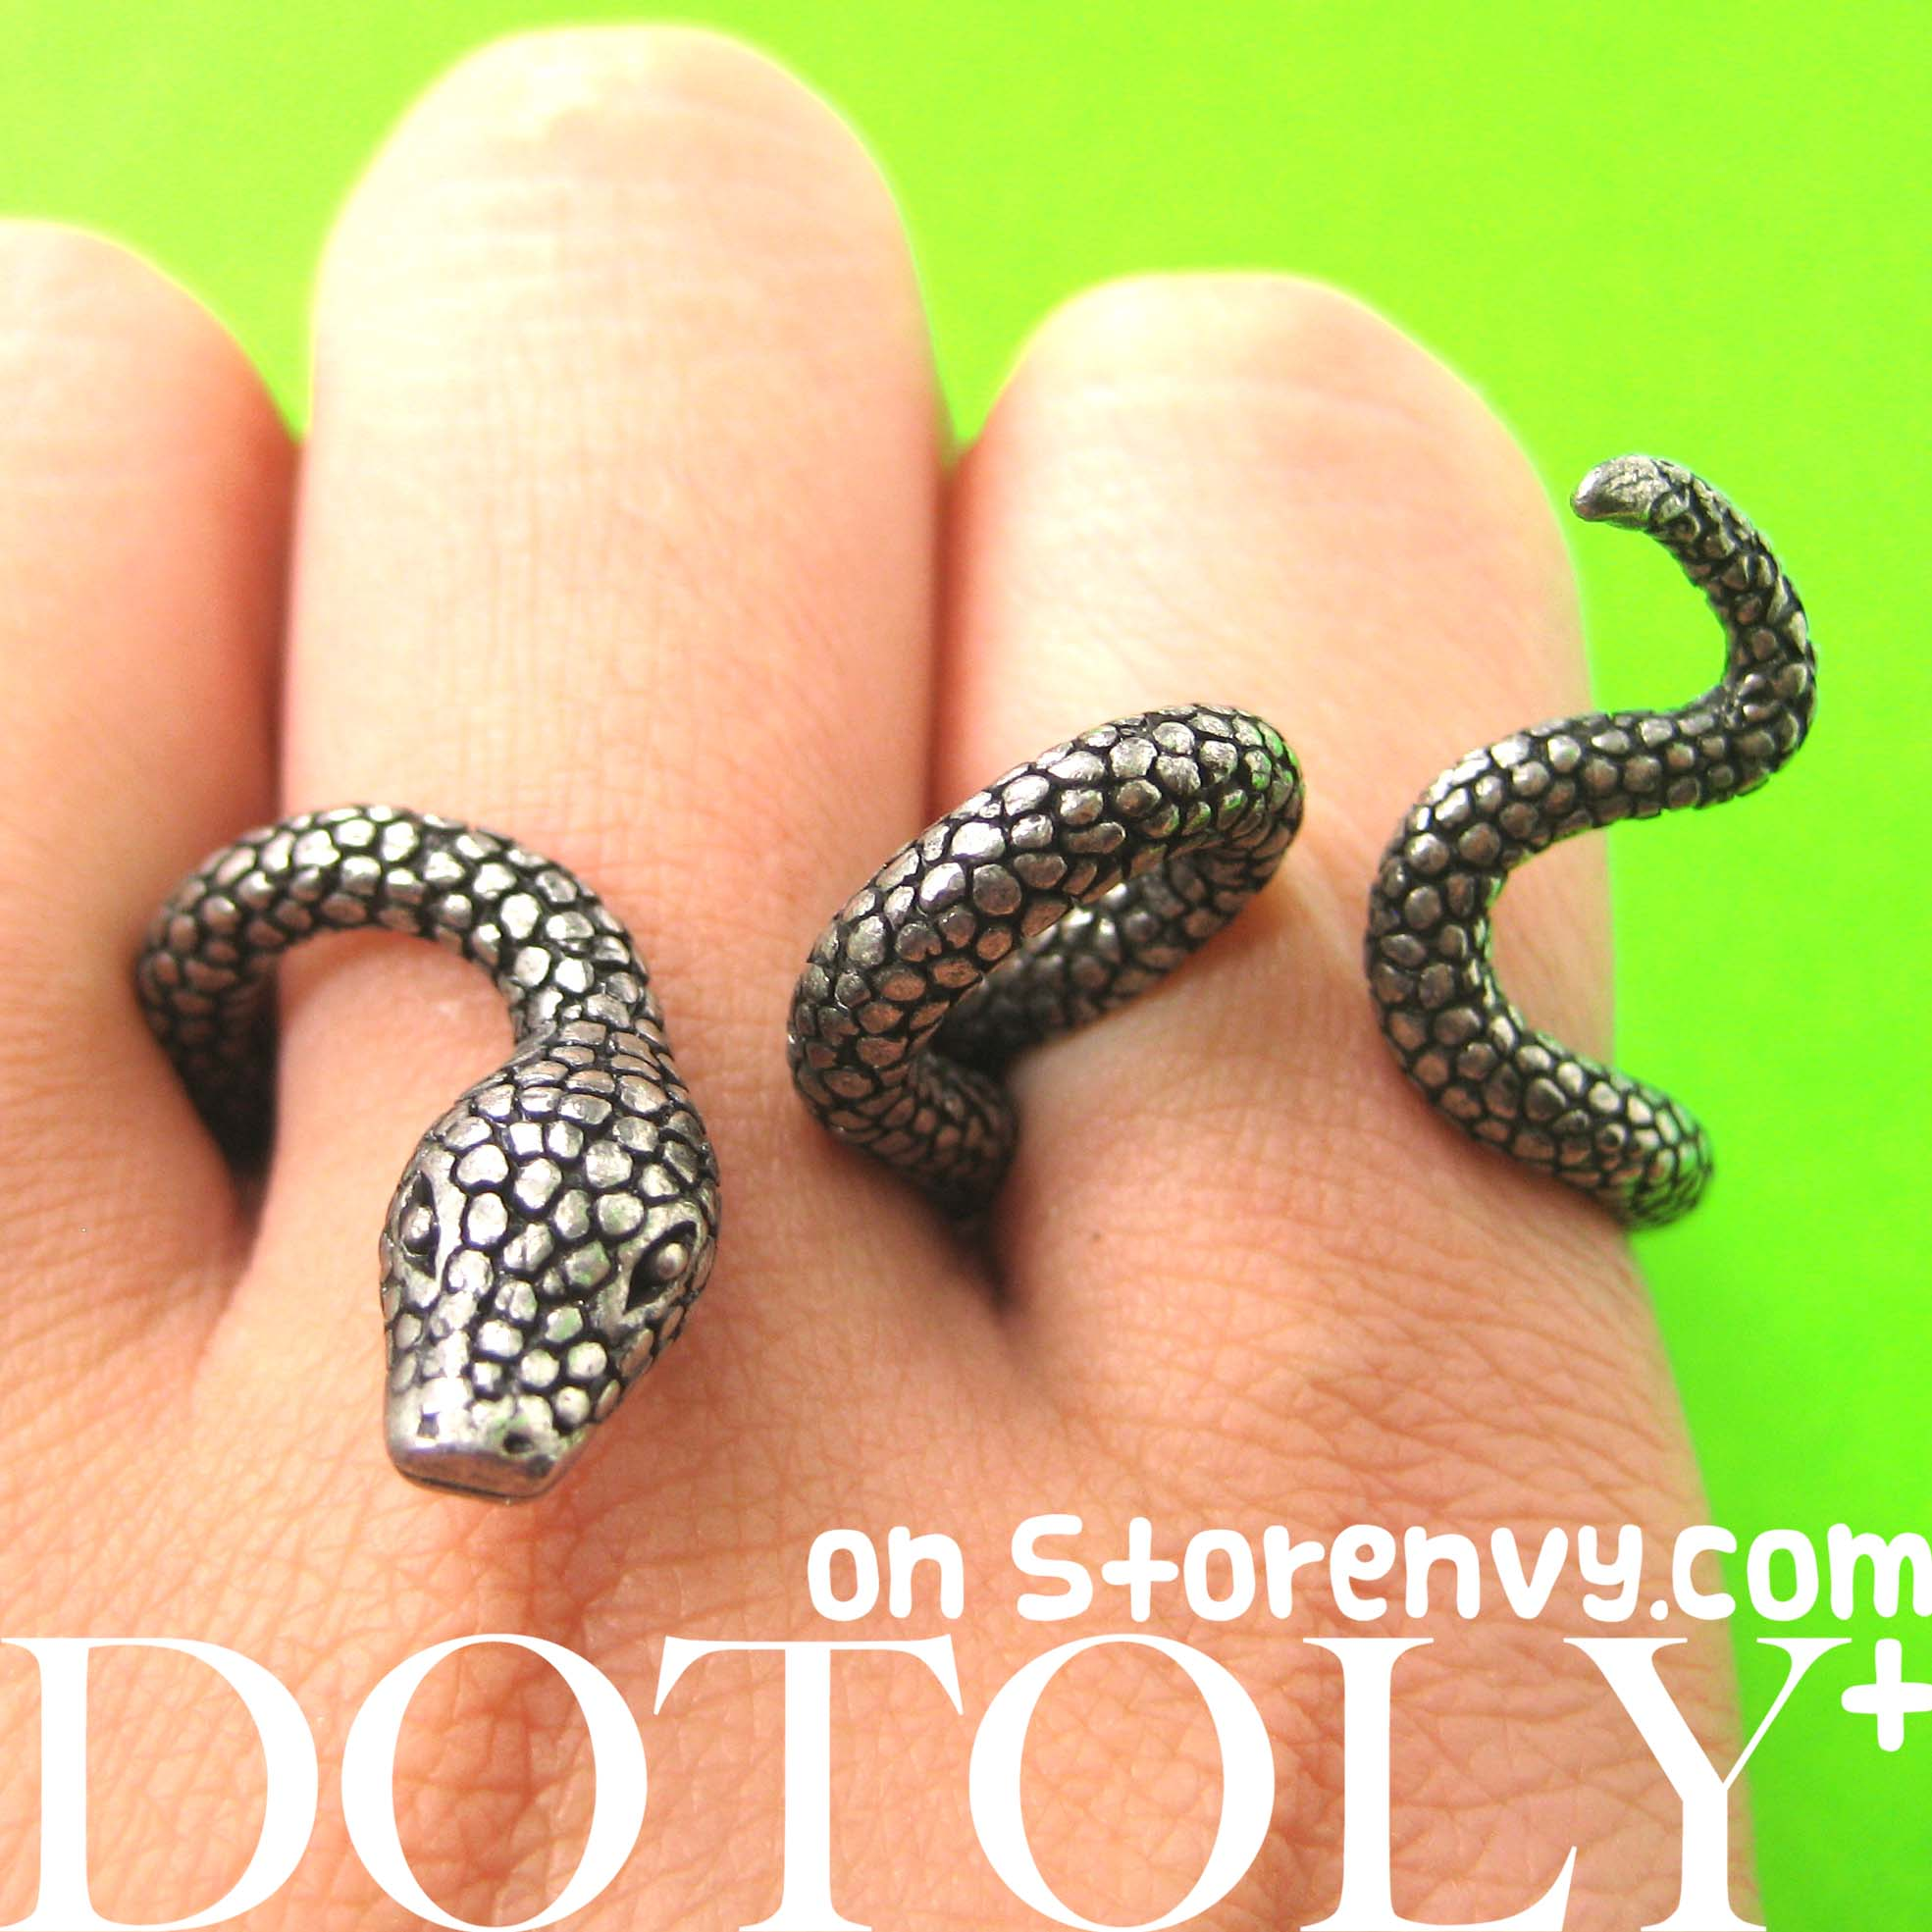 serpent by green rings loading ring ban moda jewelry large snake headed lynn of three garden eden